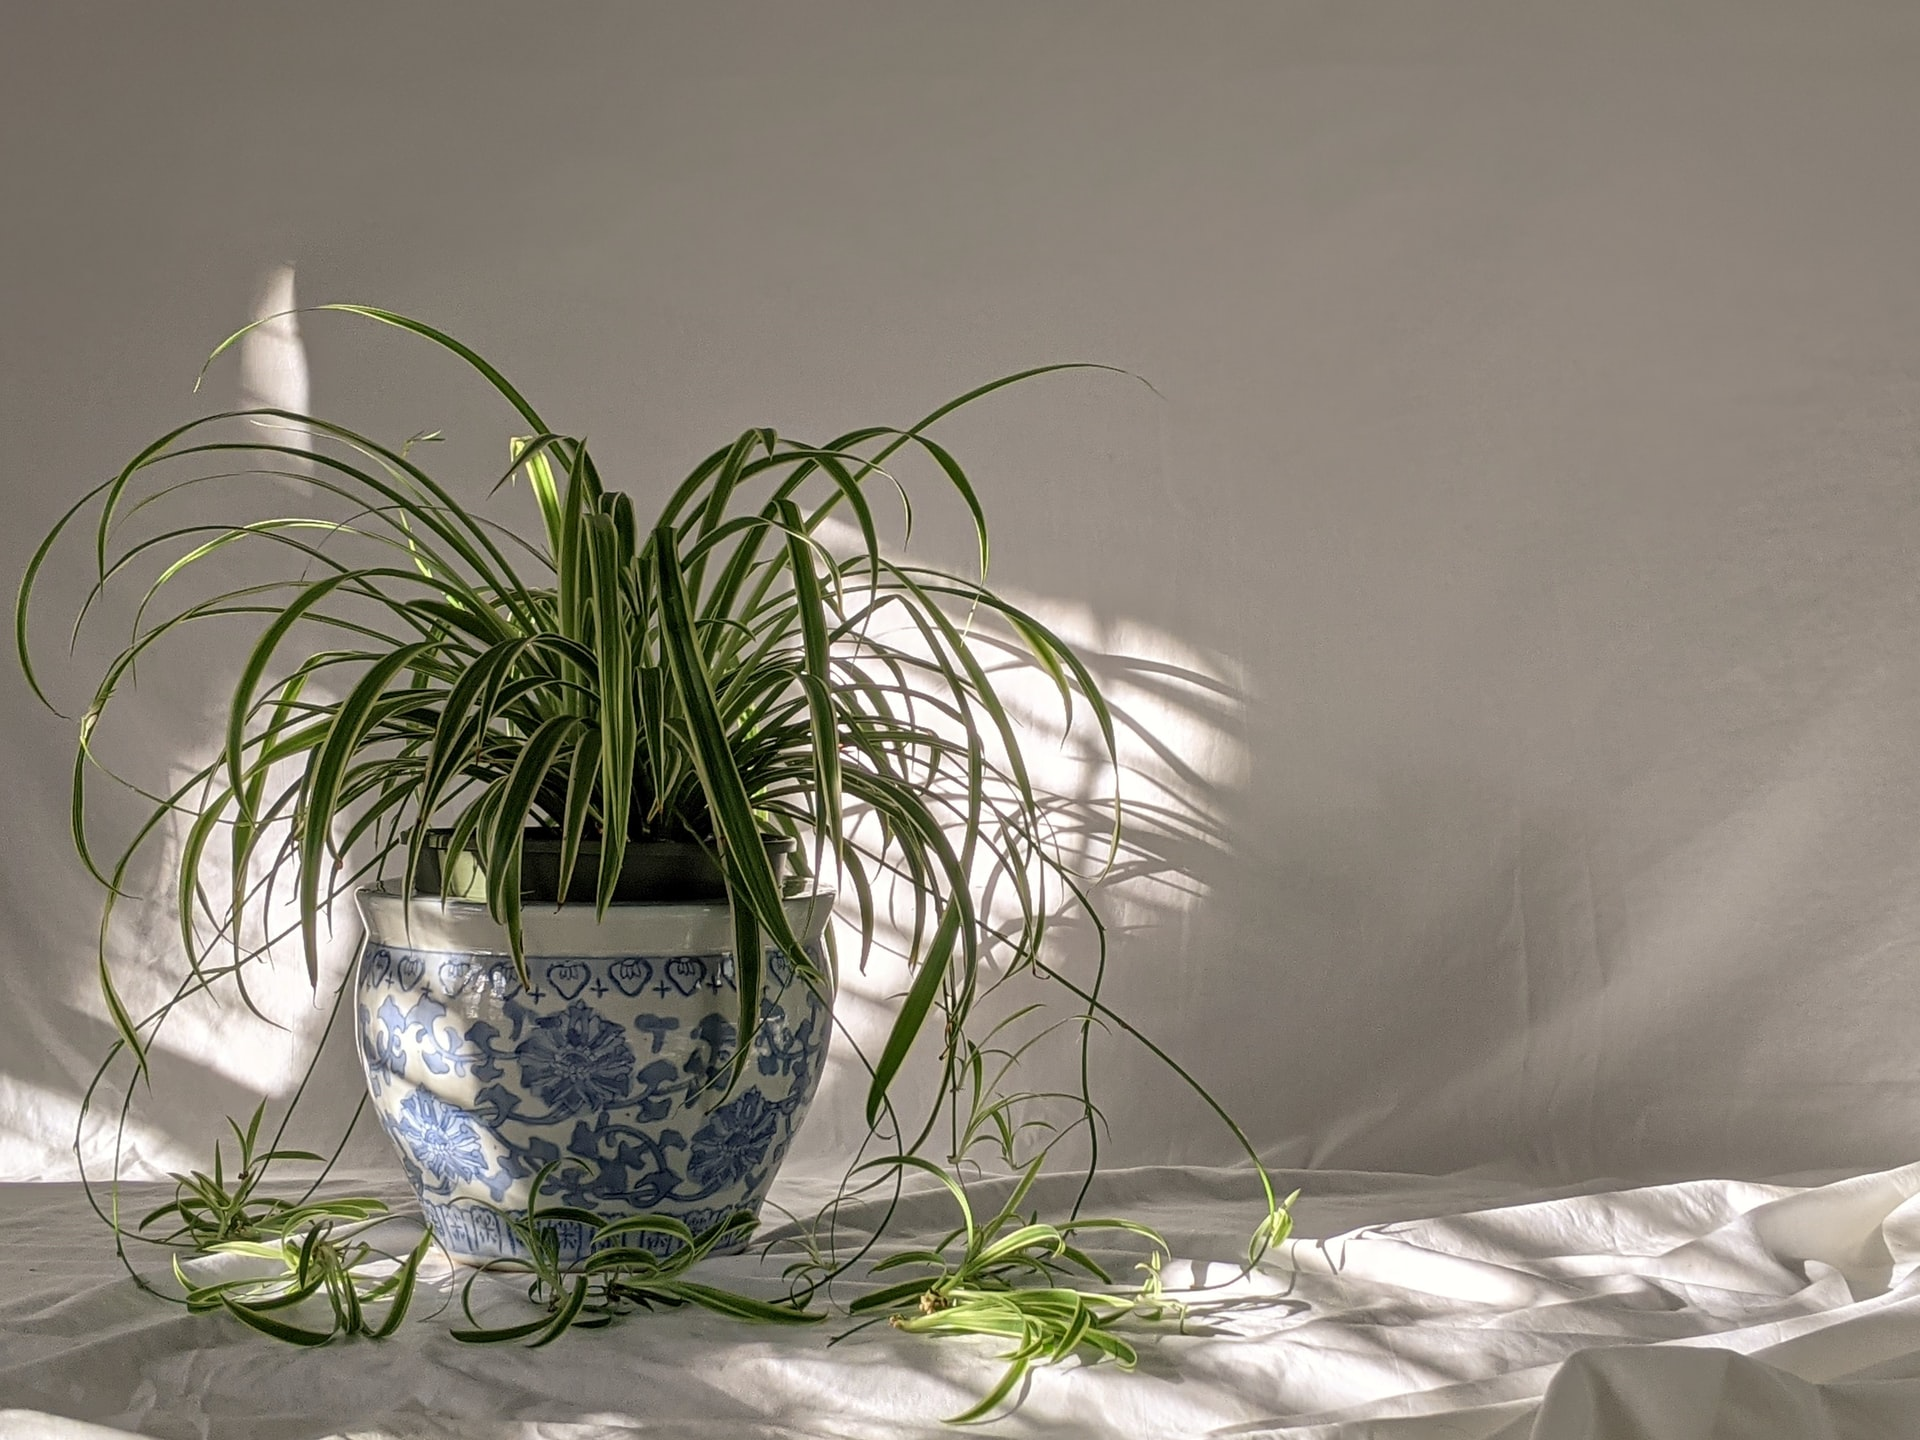 thumbnail image for blog Apartment-Friendly Houseplants to Add to Your Must-Grow List